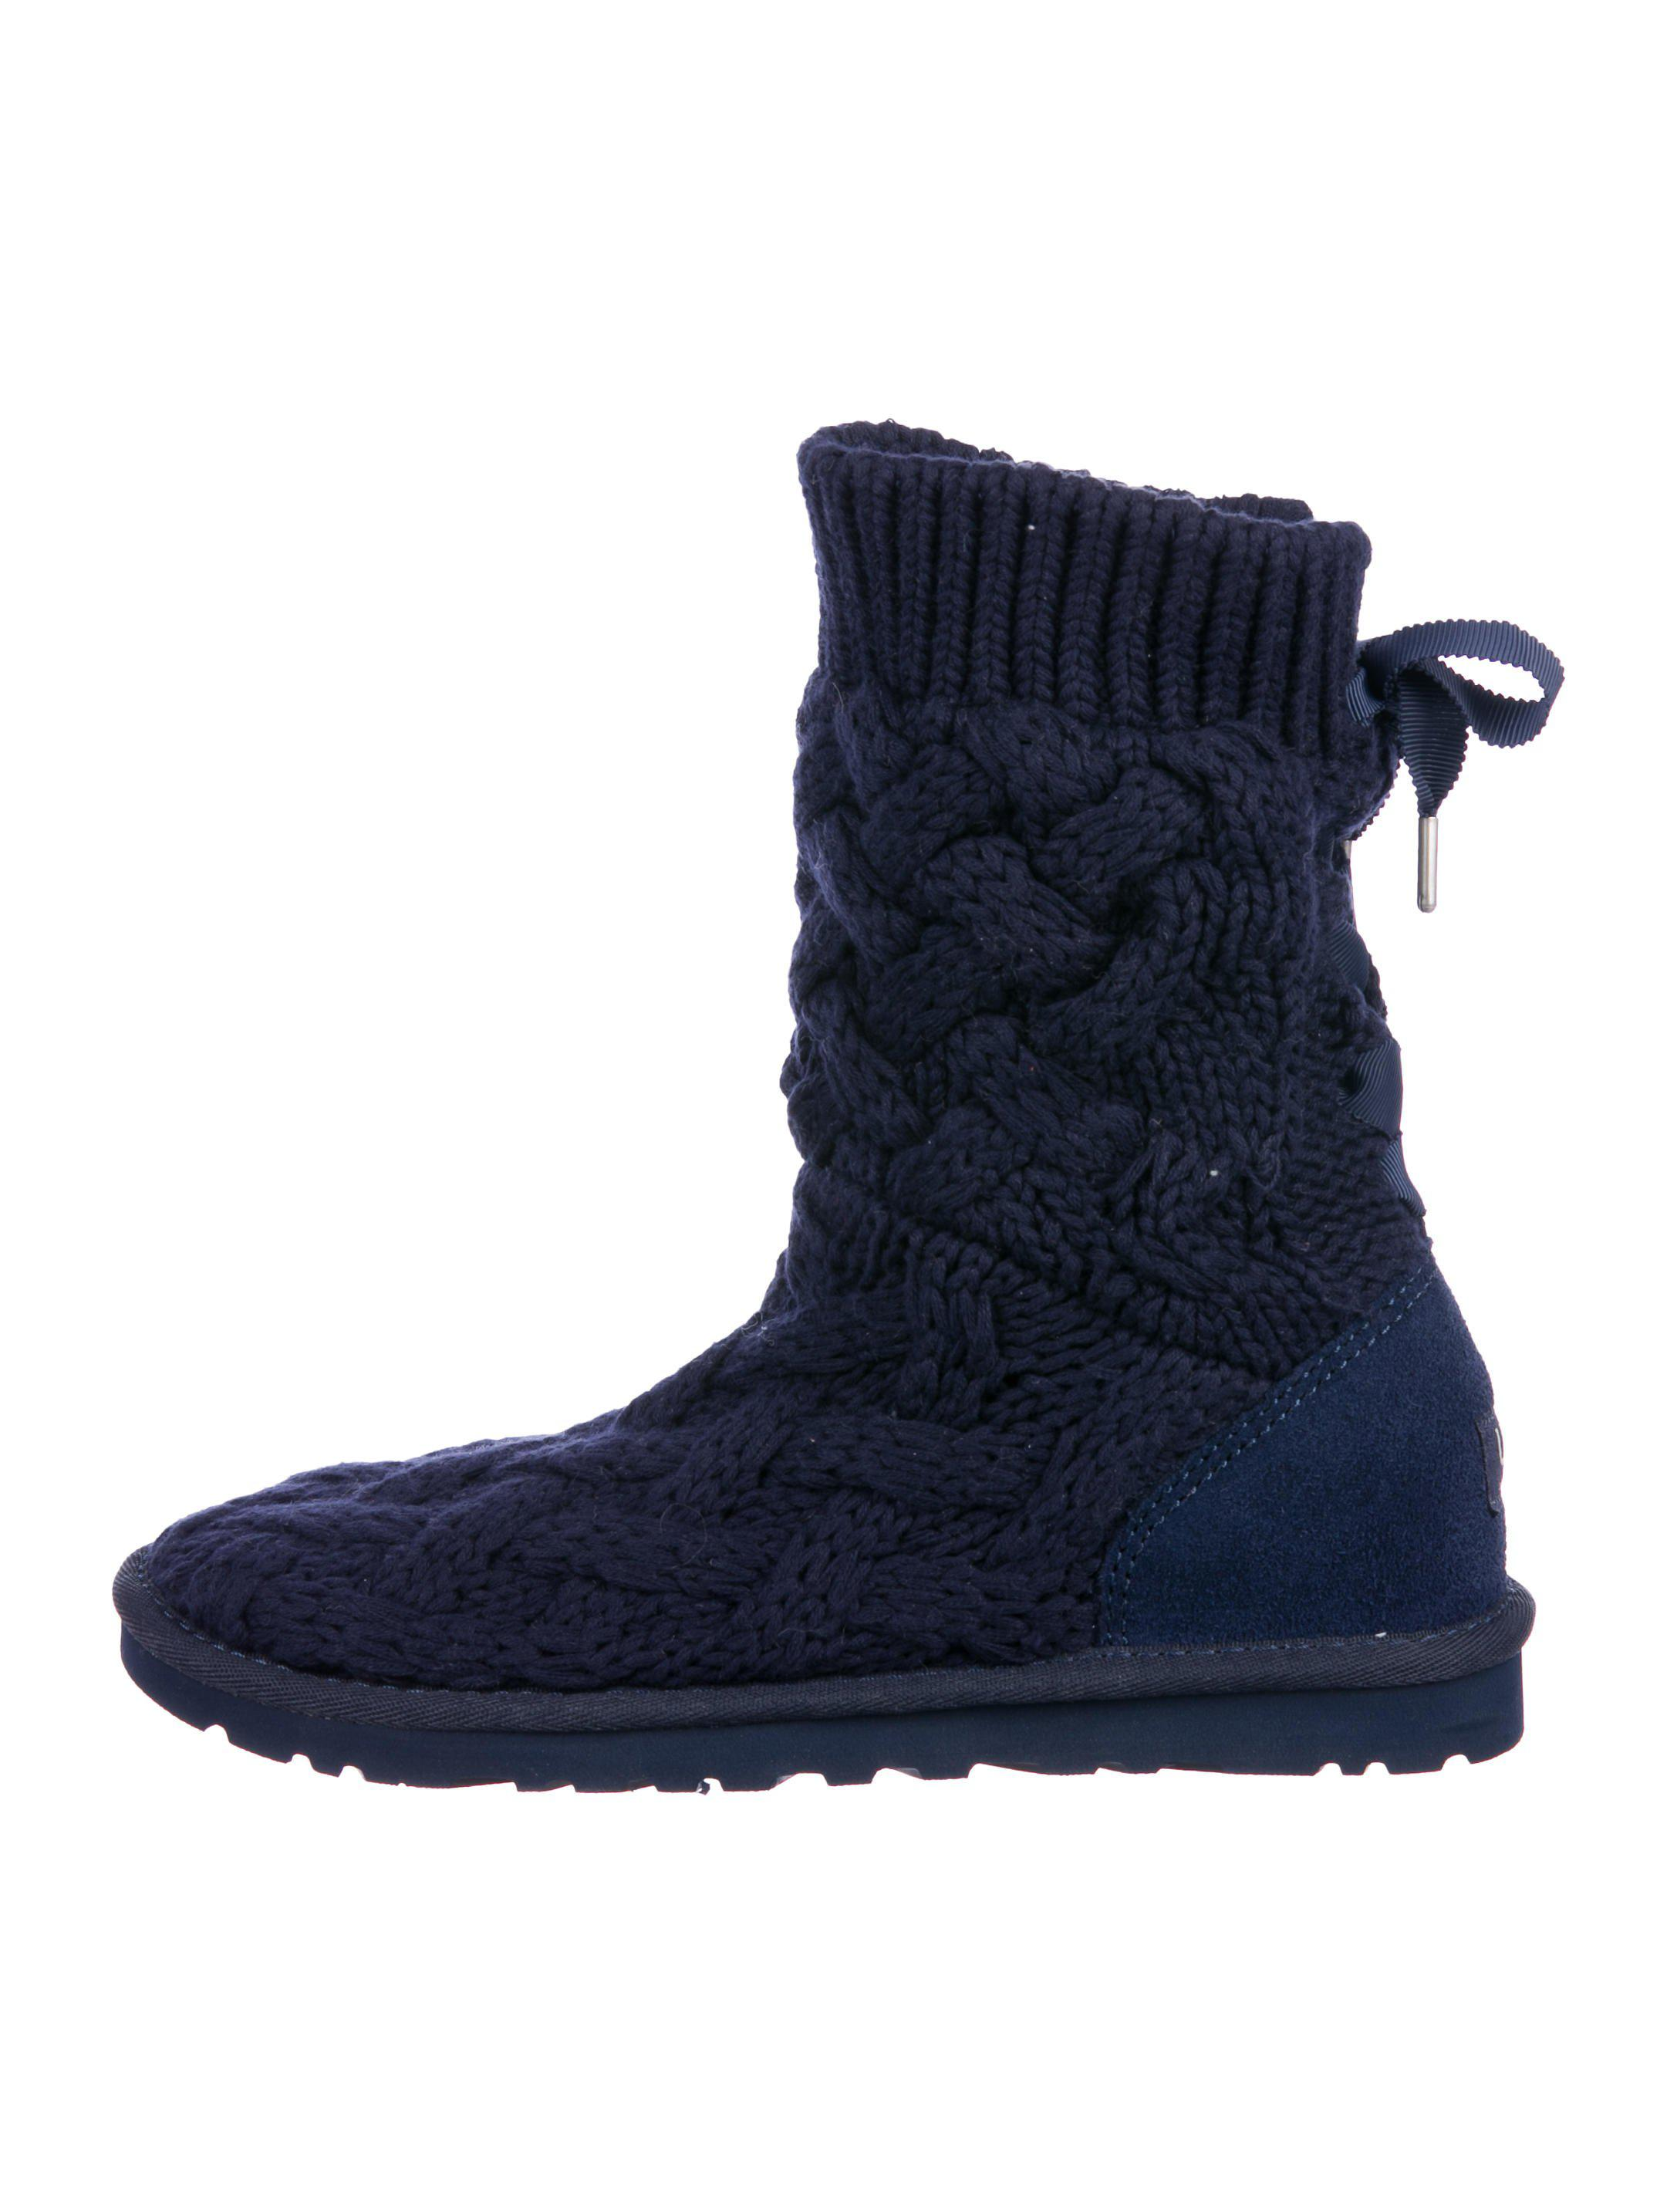 ugg classic tall navy lodge rh n tierfinancialservices com